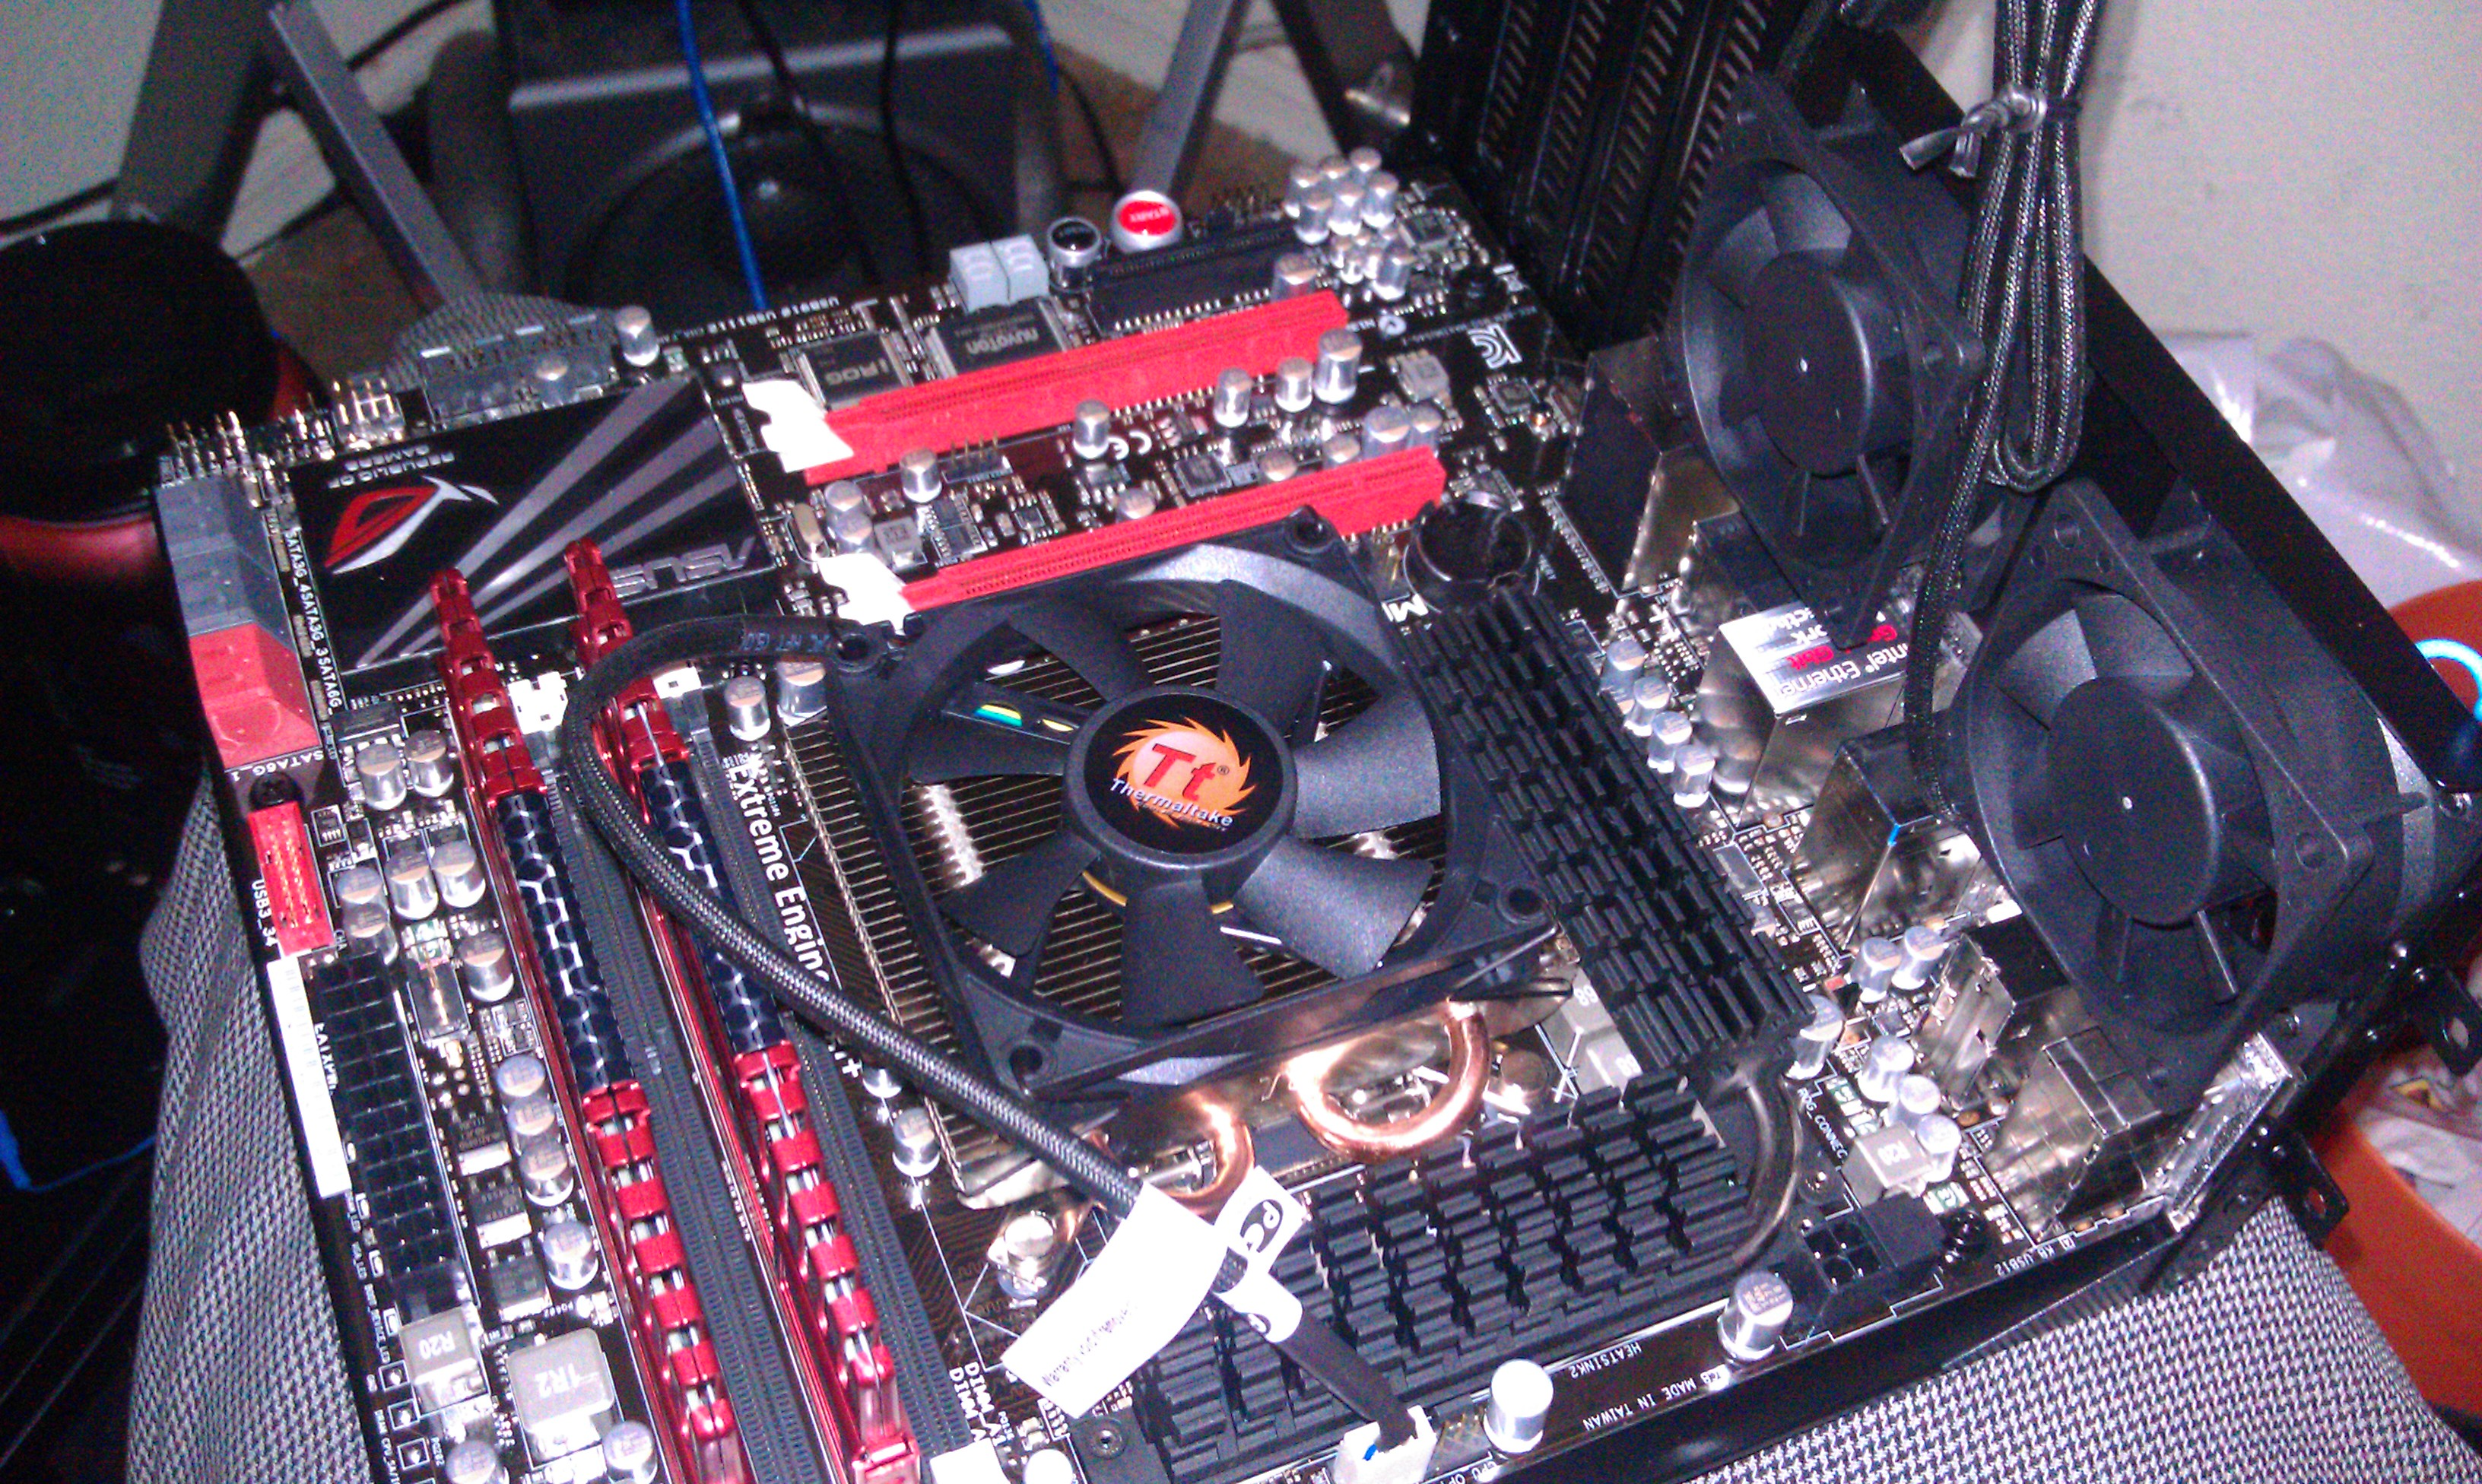 on the mobo tray